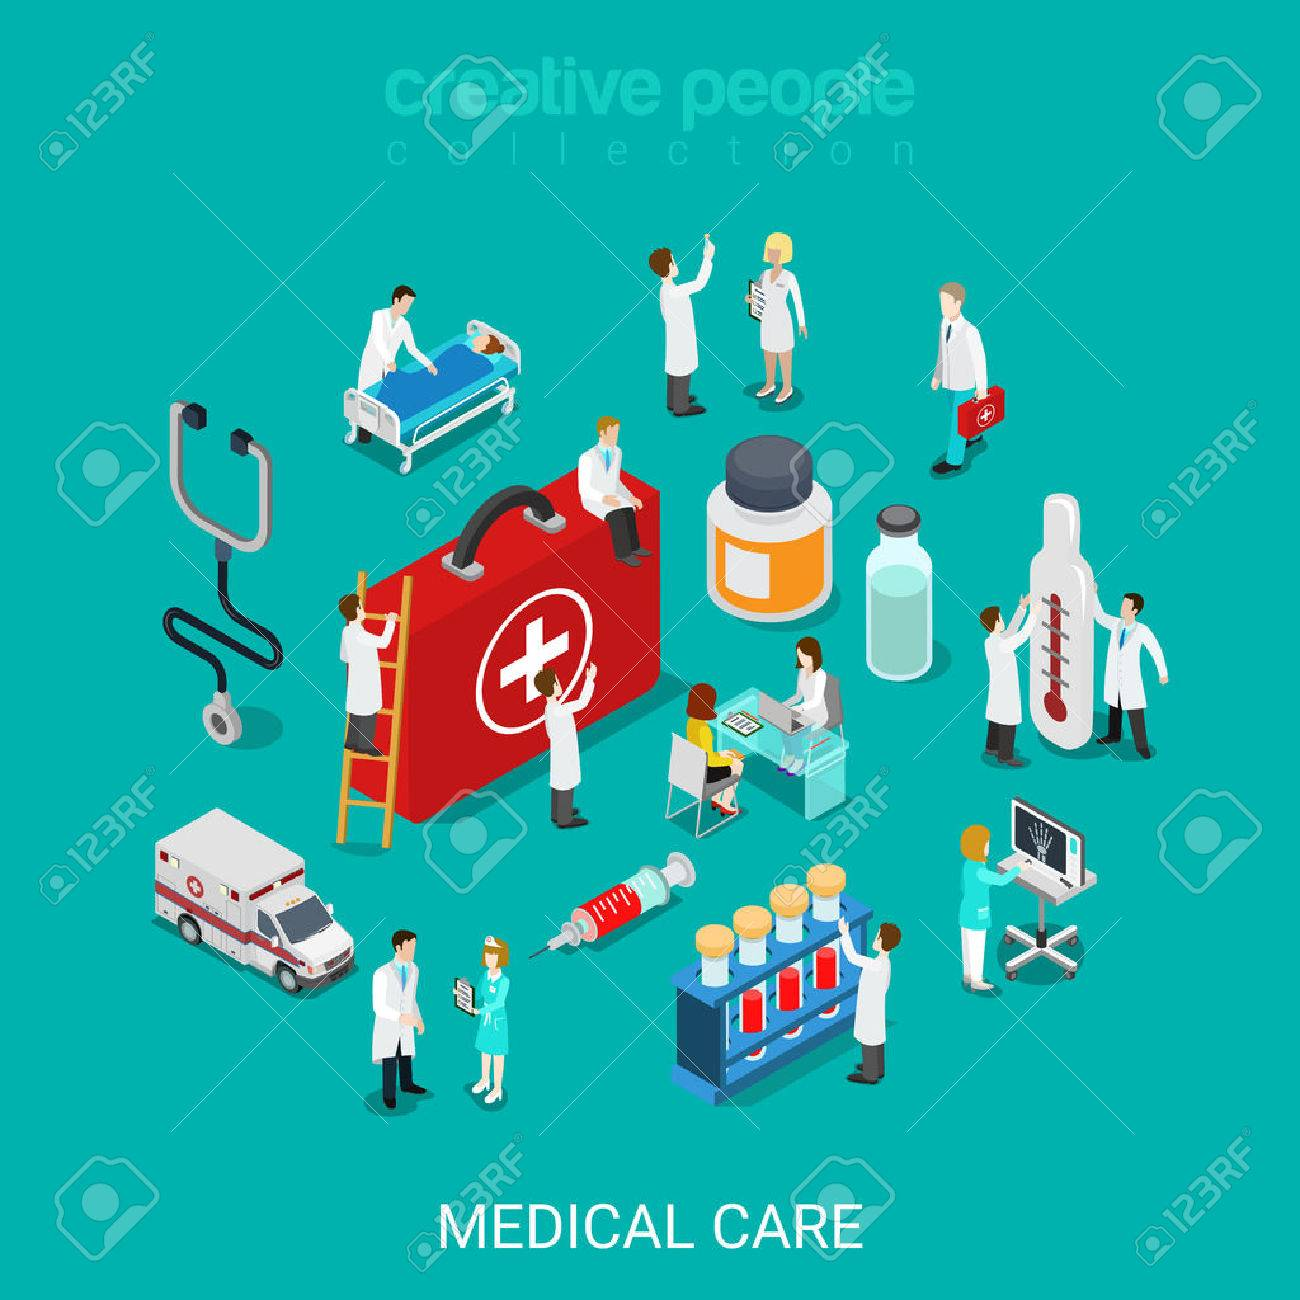 Flat 3d Isometric Medical Services Doctor Nurse First Aid Kit Royalty Free Cliparts Vectors And Stock Illustration Image 56931604